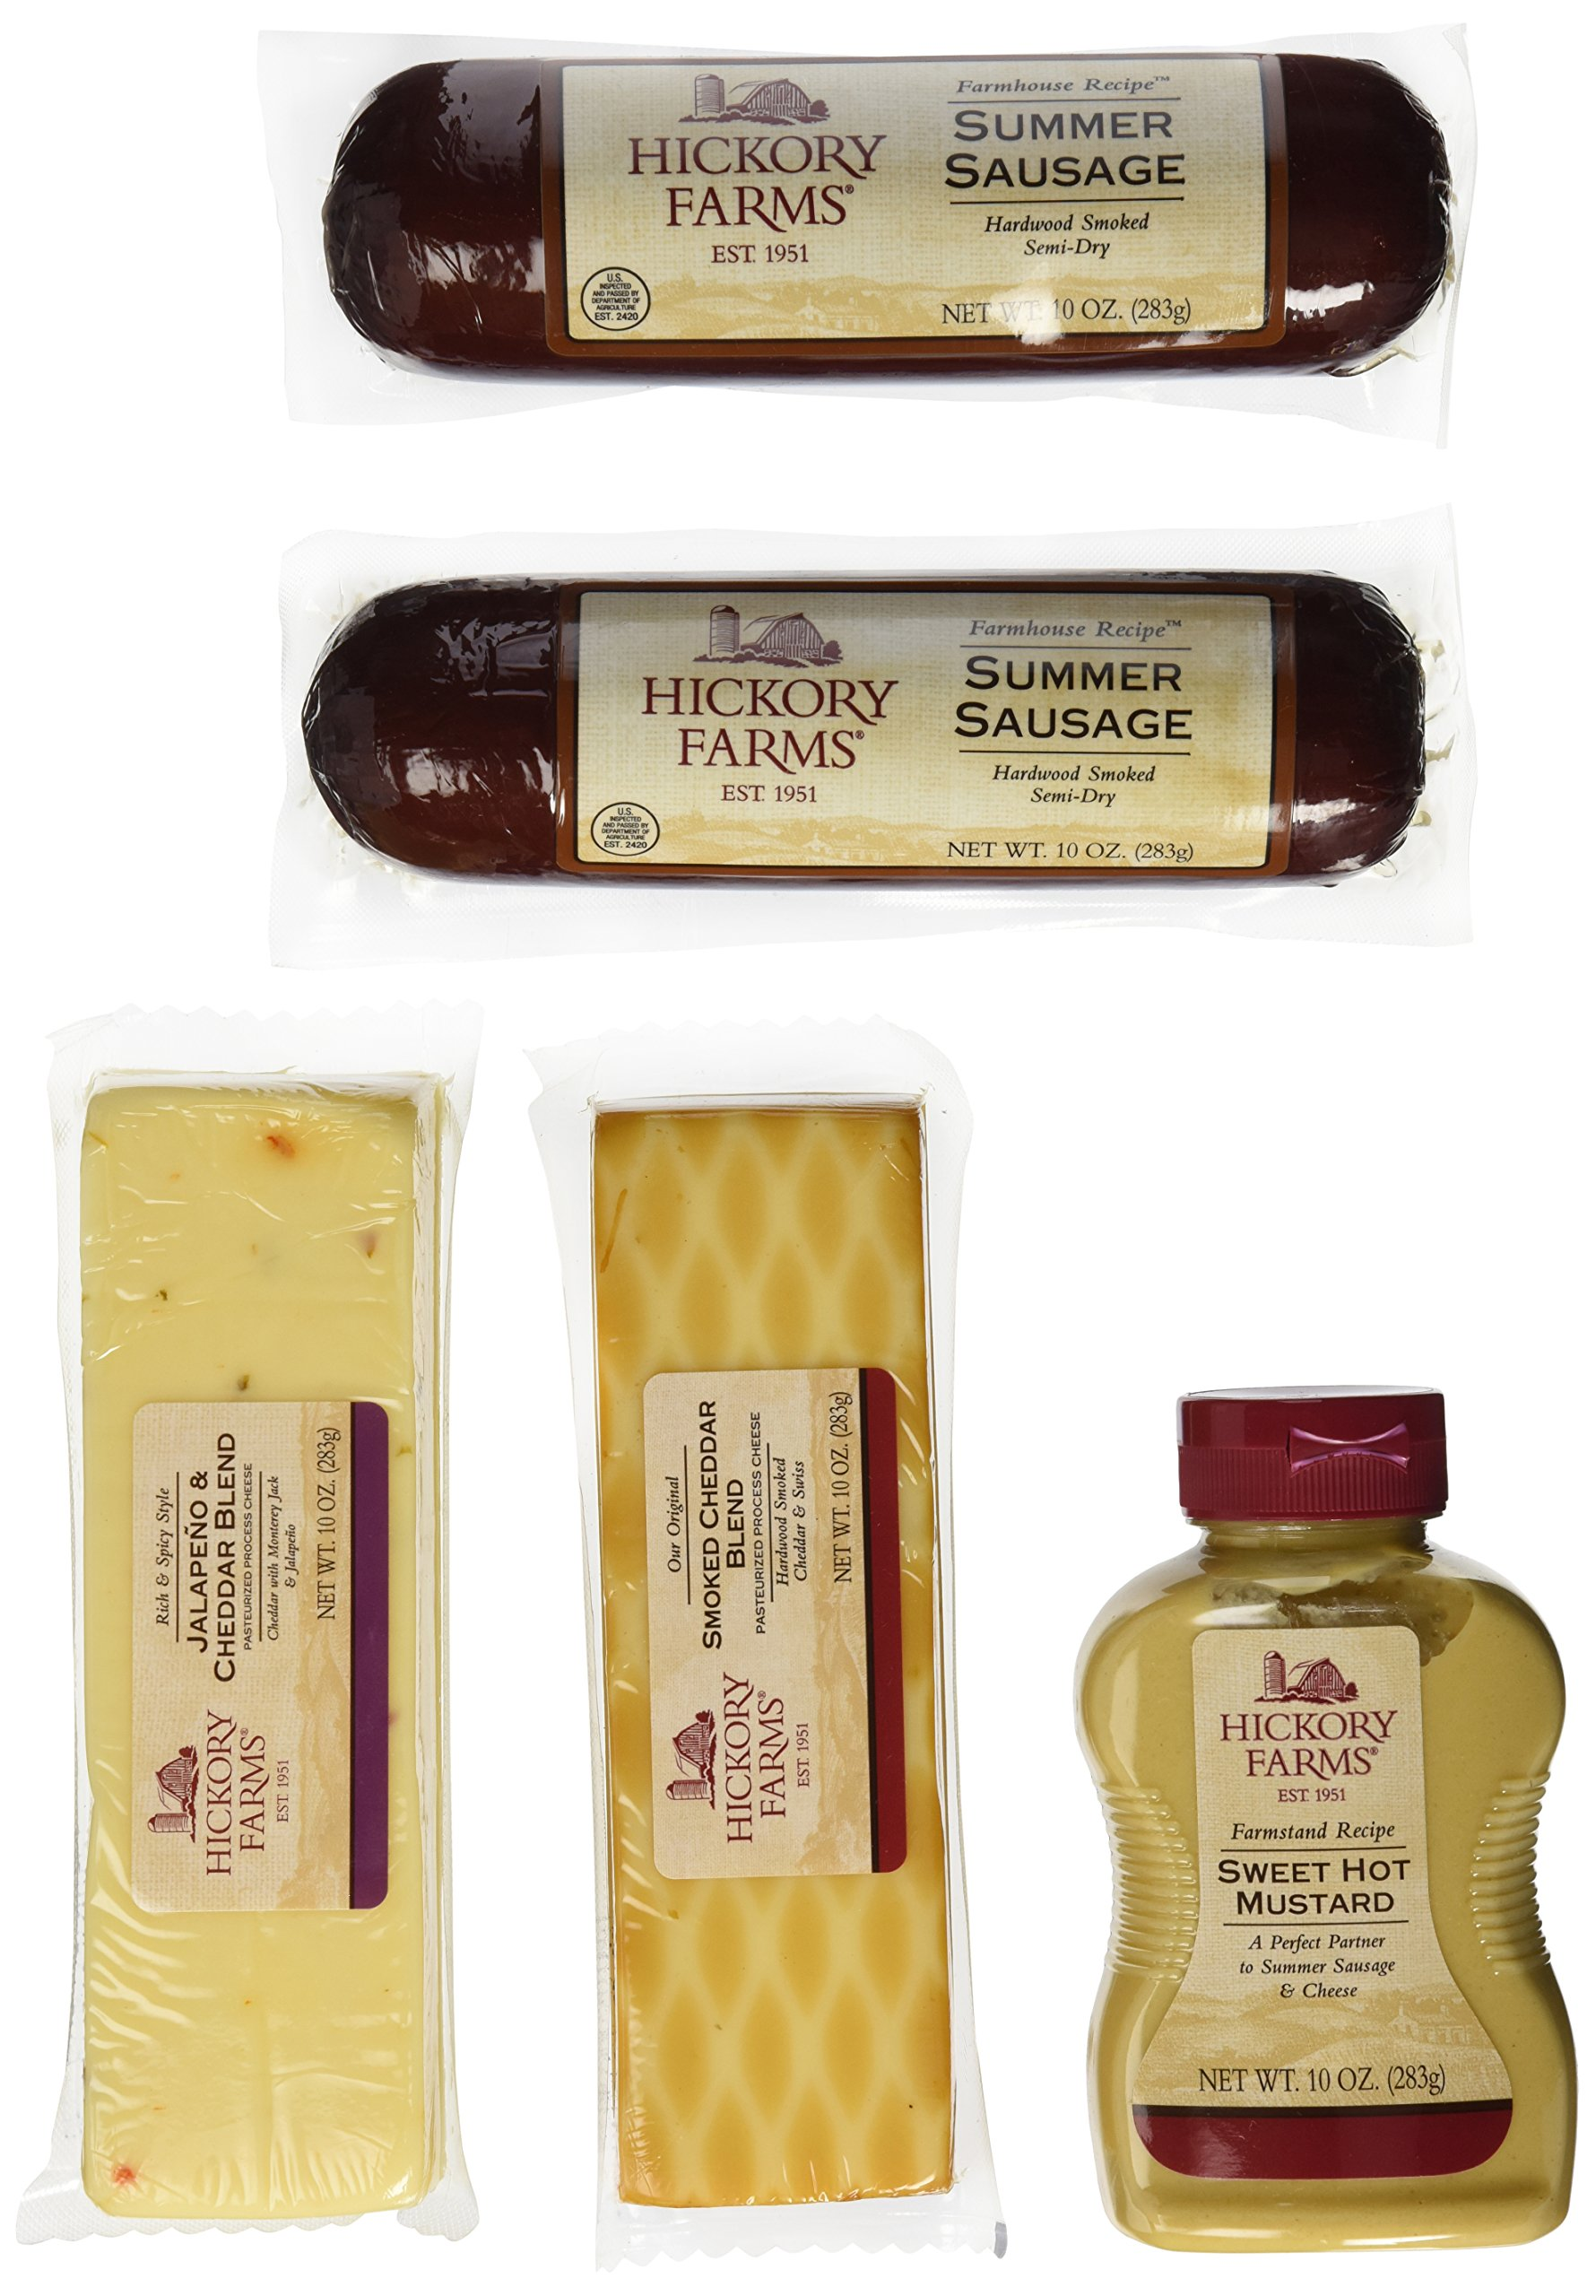 Hickory Farms Smoked Sausage and Cheese Bundle of 5 Items, Summer Sausage Salami, Smoked Cheddar, Jalapeno Cheese, Sweet Hot Mustard. Over 3 Pounds of Snacking